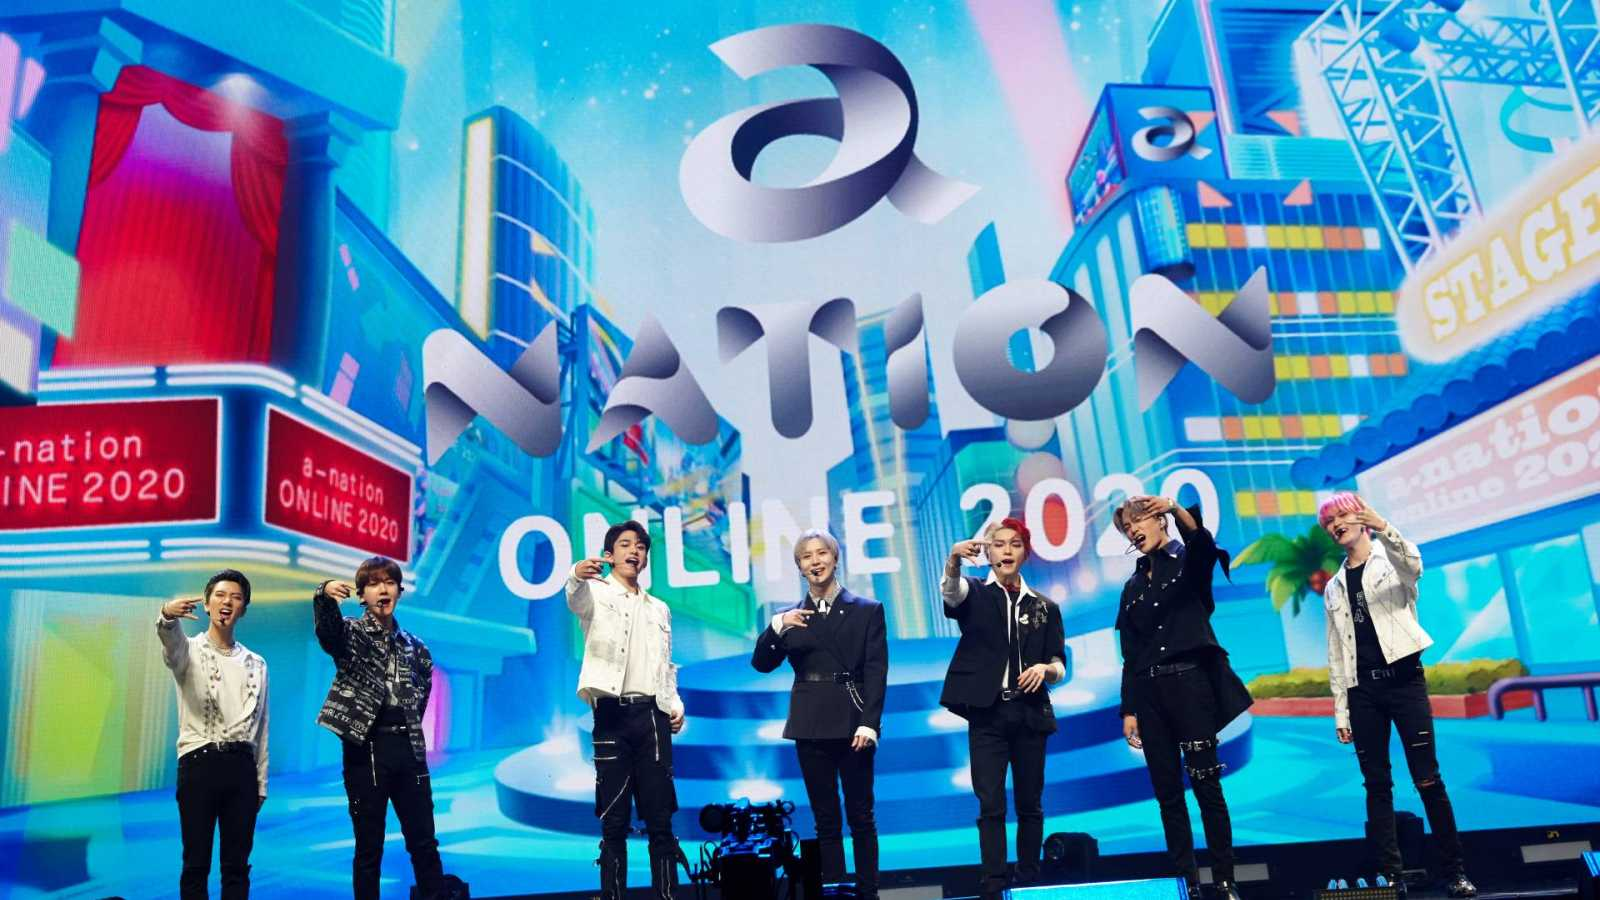 Red Velvet, EXO-SC, SuperM, and SUPER JUNIOR at a-nation Online 2020 © a-nation. All rights reserved.